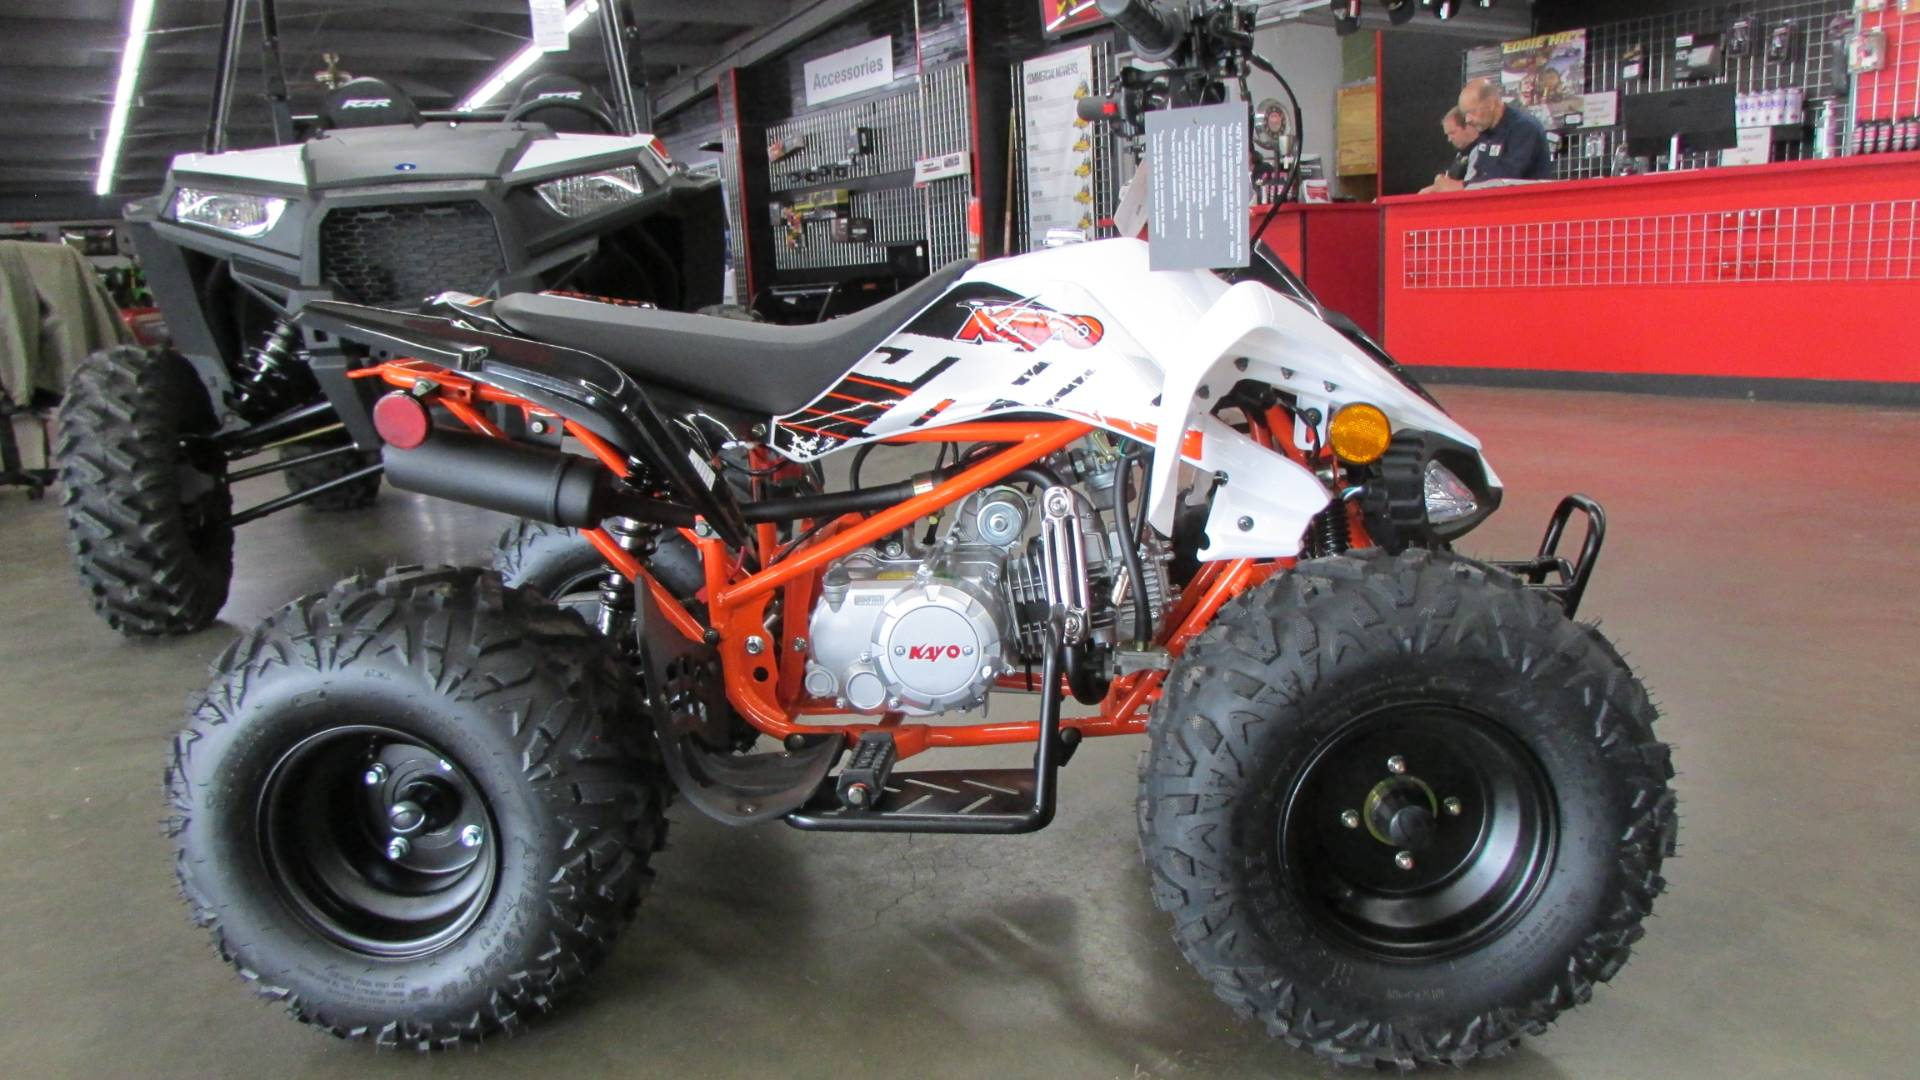 2020 Kayo Predator 125 in Wichita Falls, Texas - Photo 3